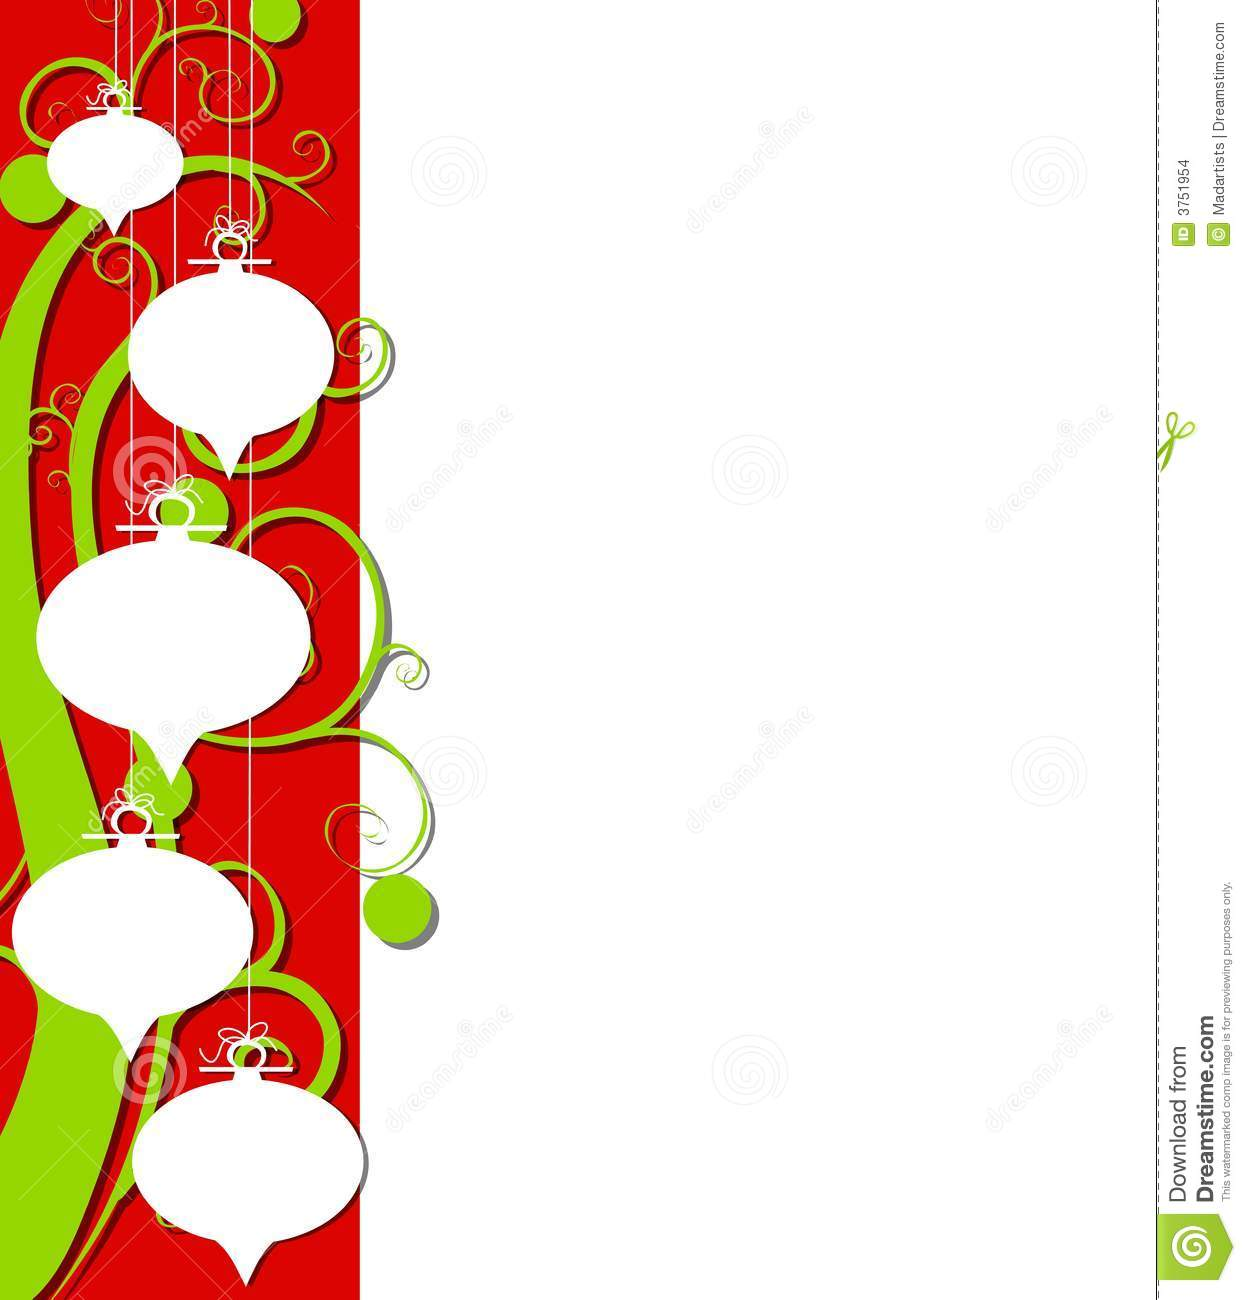 Word clipart christmas borders graphic library Christmas Clip Art Borders For Word Documents | Clipart ... graphic library